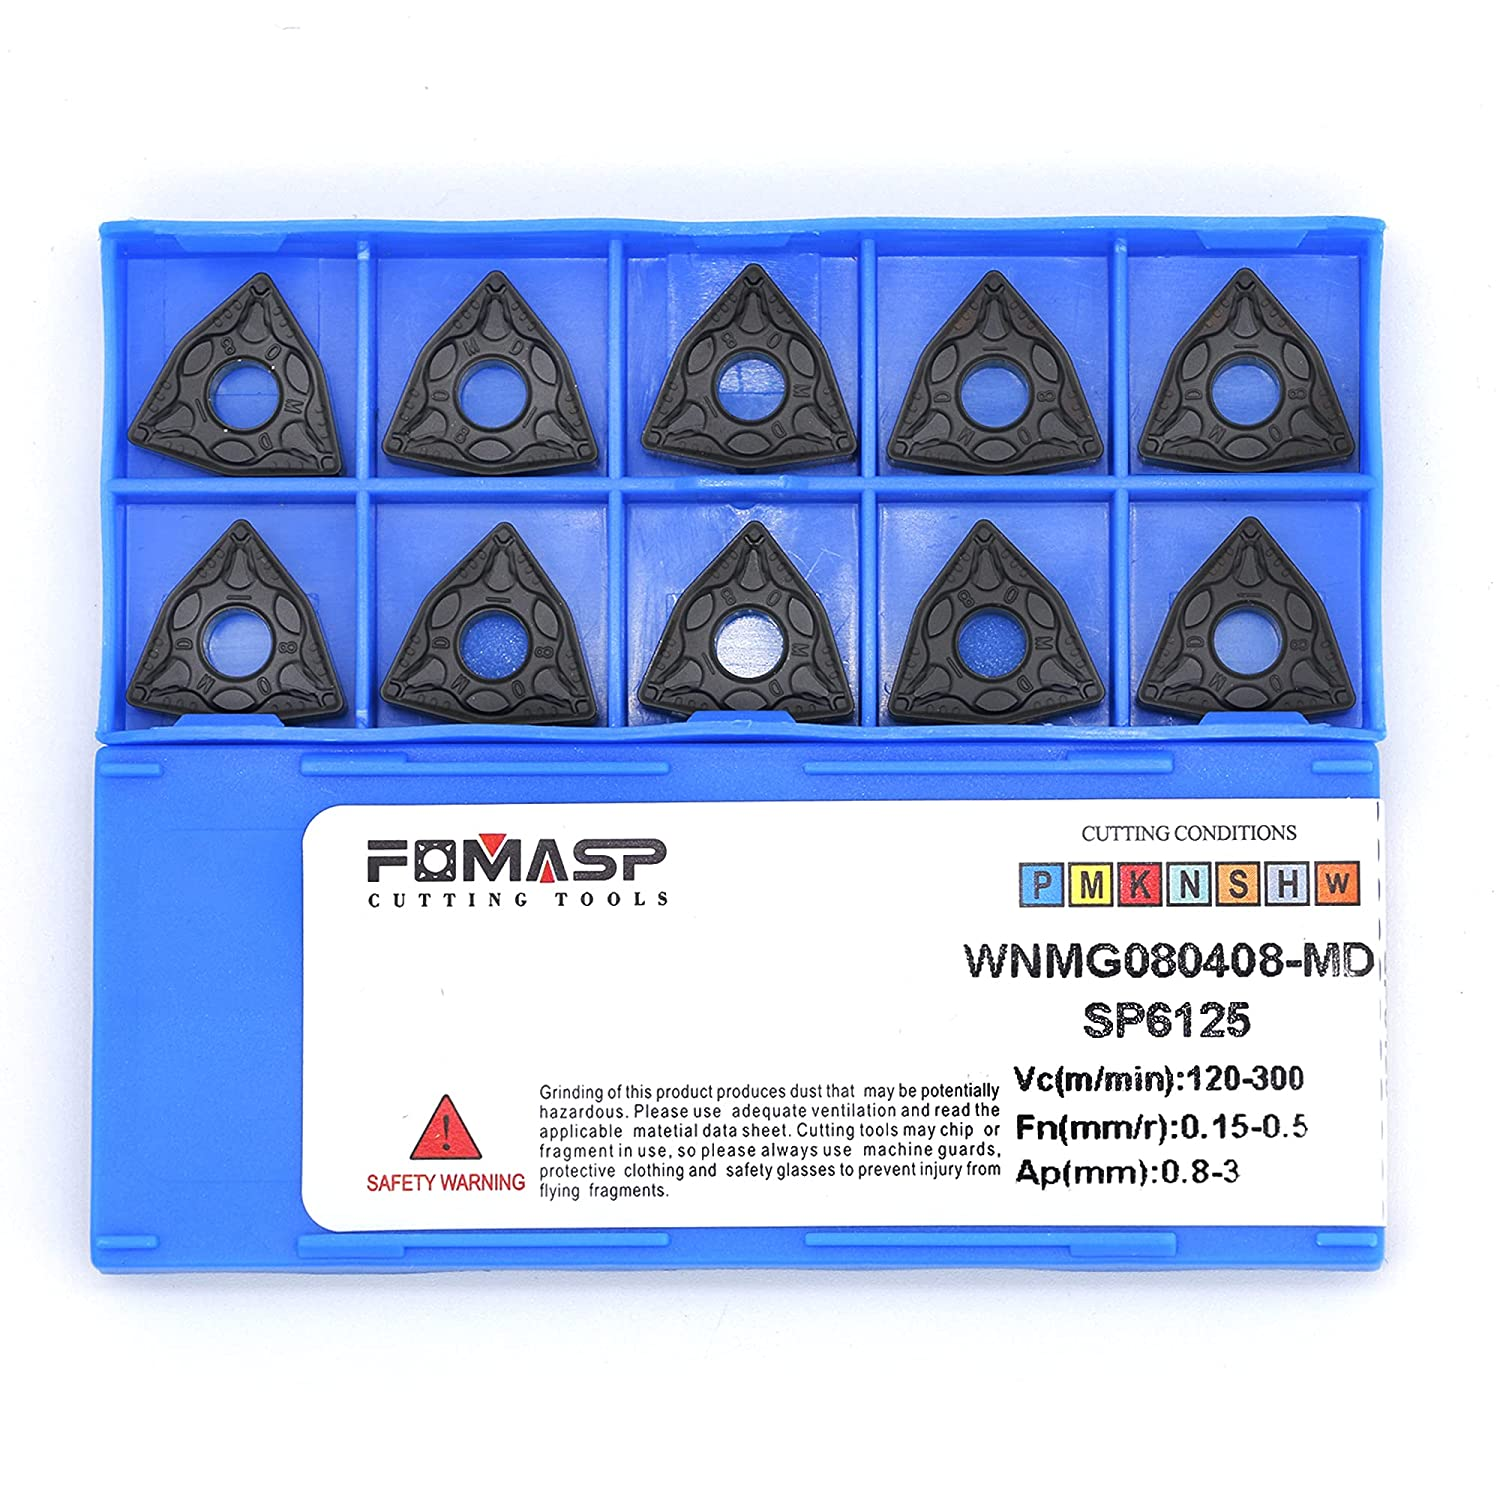 FomaSP WNMG432 WNMG080408-PM Limited Special Price of CNC safety Steel for Inserts Carbide